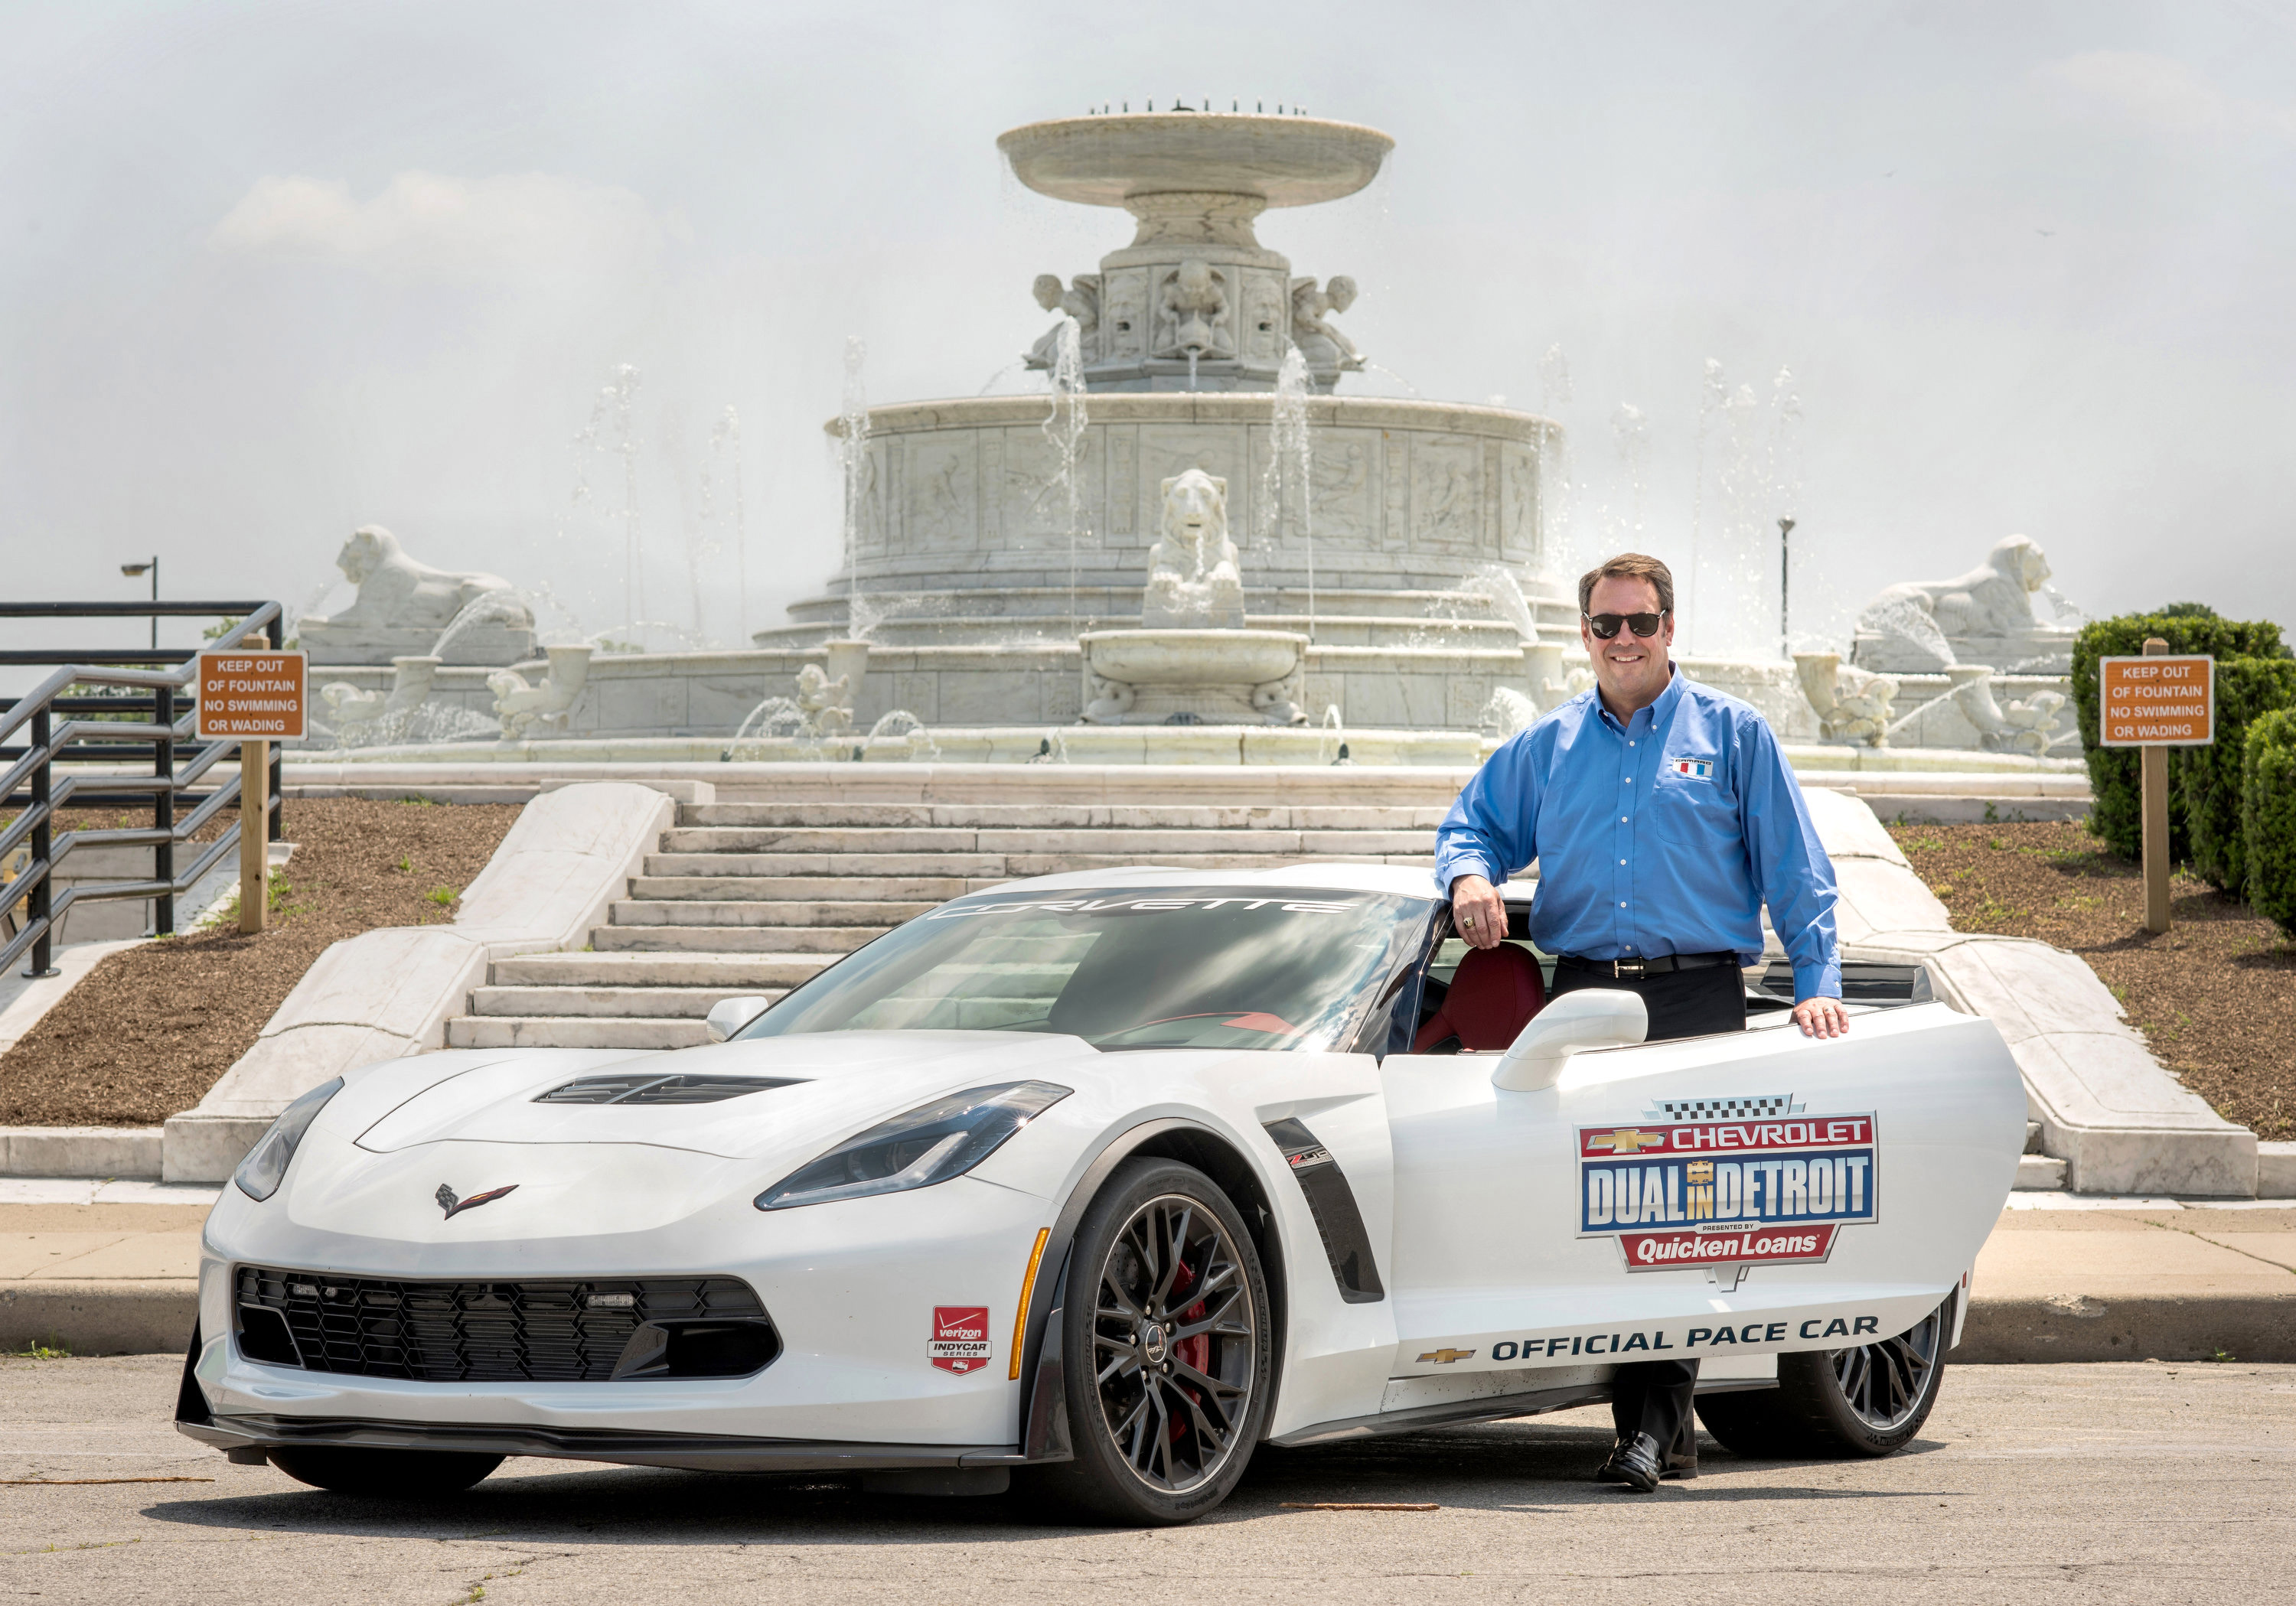 Chevrolet announces Friday, May 29, 2015 that General Motors Executive Vice President Product Development Mark Reuss will drive the Corvette Z06 pace car this weekend for the Chevrolet Dual in Detroit on Belle Isle in Detroit, Michigan. The Corvette Z06 features 650 supercharged horsepower, a seven-speed manual transmission and a track-capable chassis system. (Photo by Steve Fecht for Chevrolet)